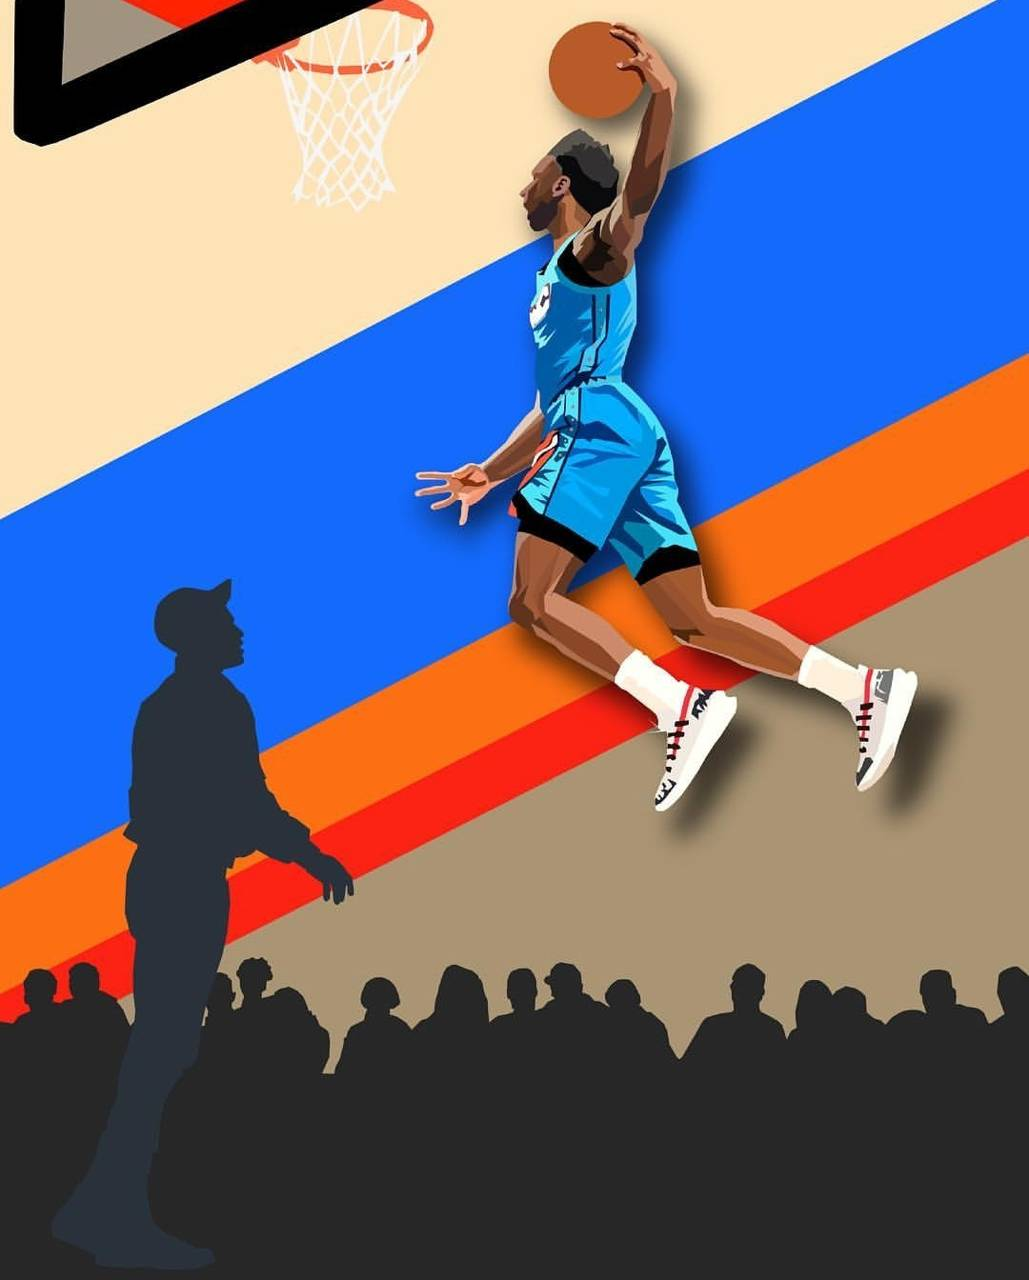 Basketball Dunk Wallpaper By Issamch 9c Free On Zedge